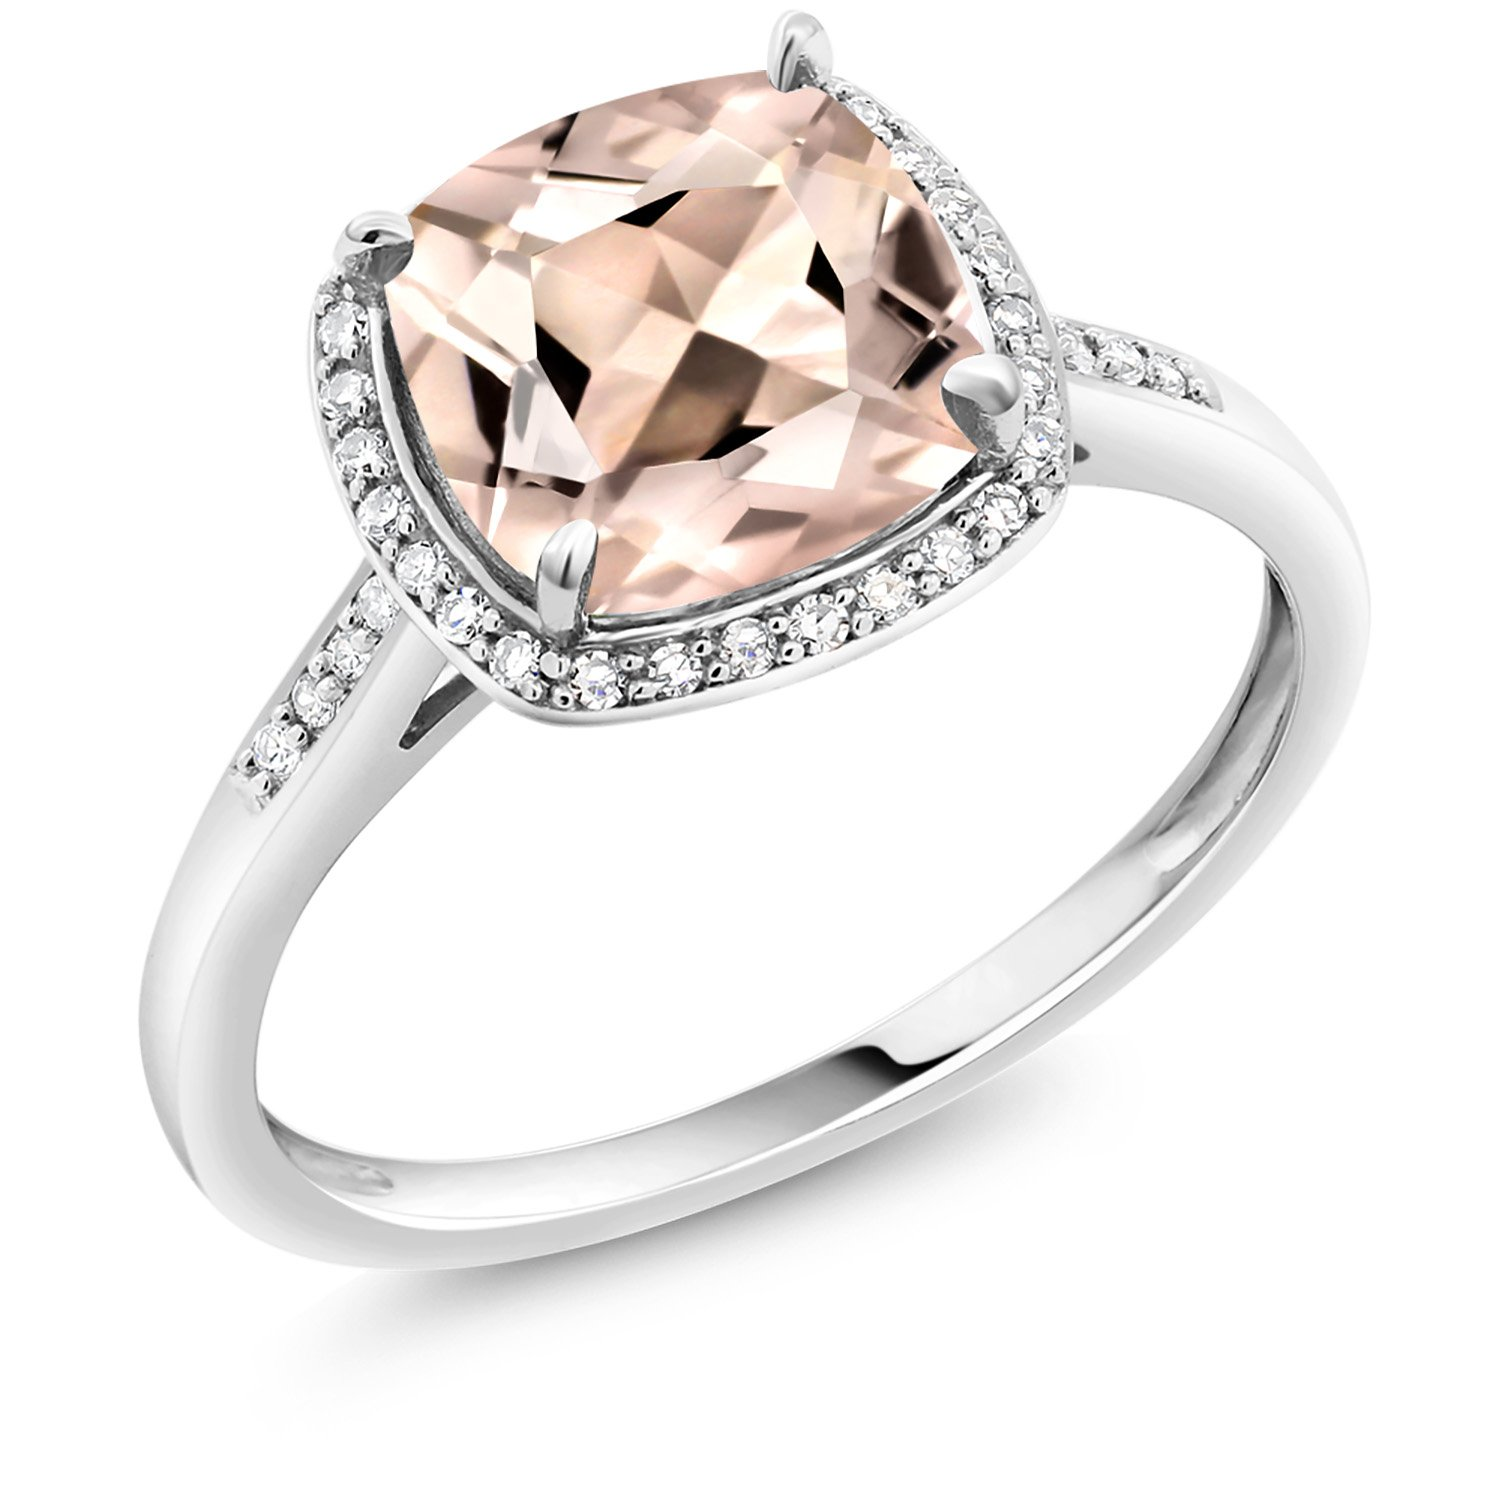 Gem Stone King 10K White Gold Ring 1.88 Ct Cushion Peach Morganite with Diamond Accent (Size 7) by Gem Stone King